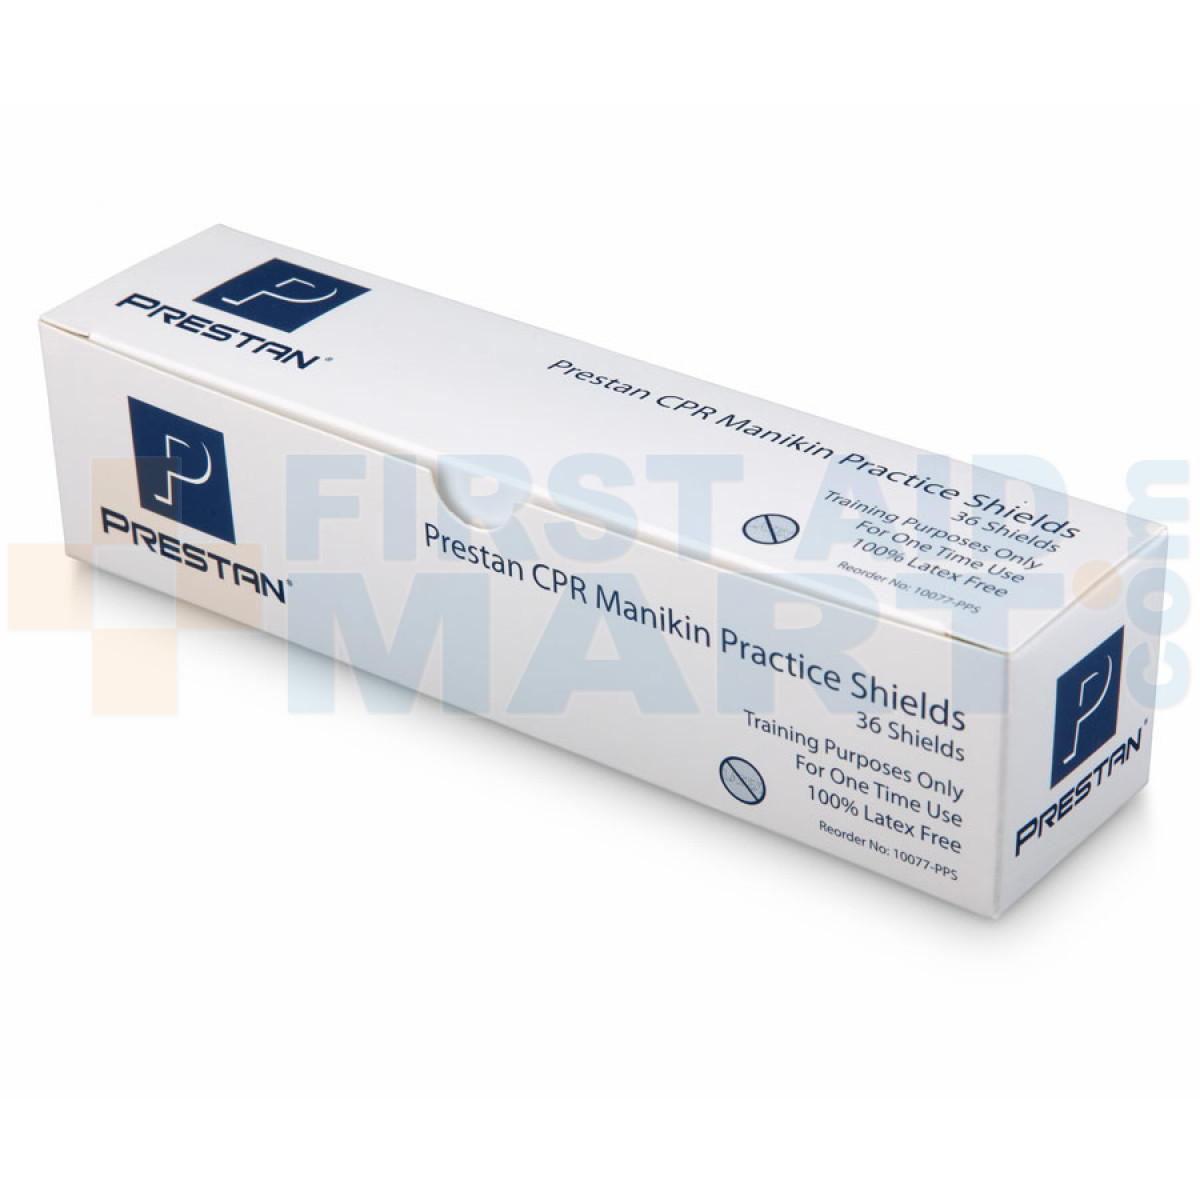 065acfcc6b Prestan CPR Practice Shields - Box/Roll of 36 - 10077-PPS ...